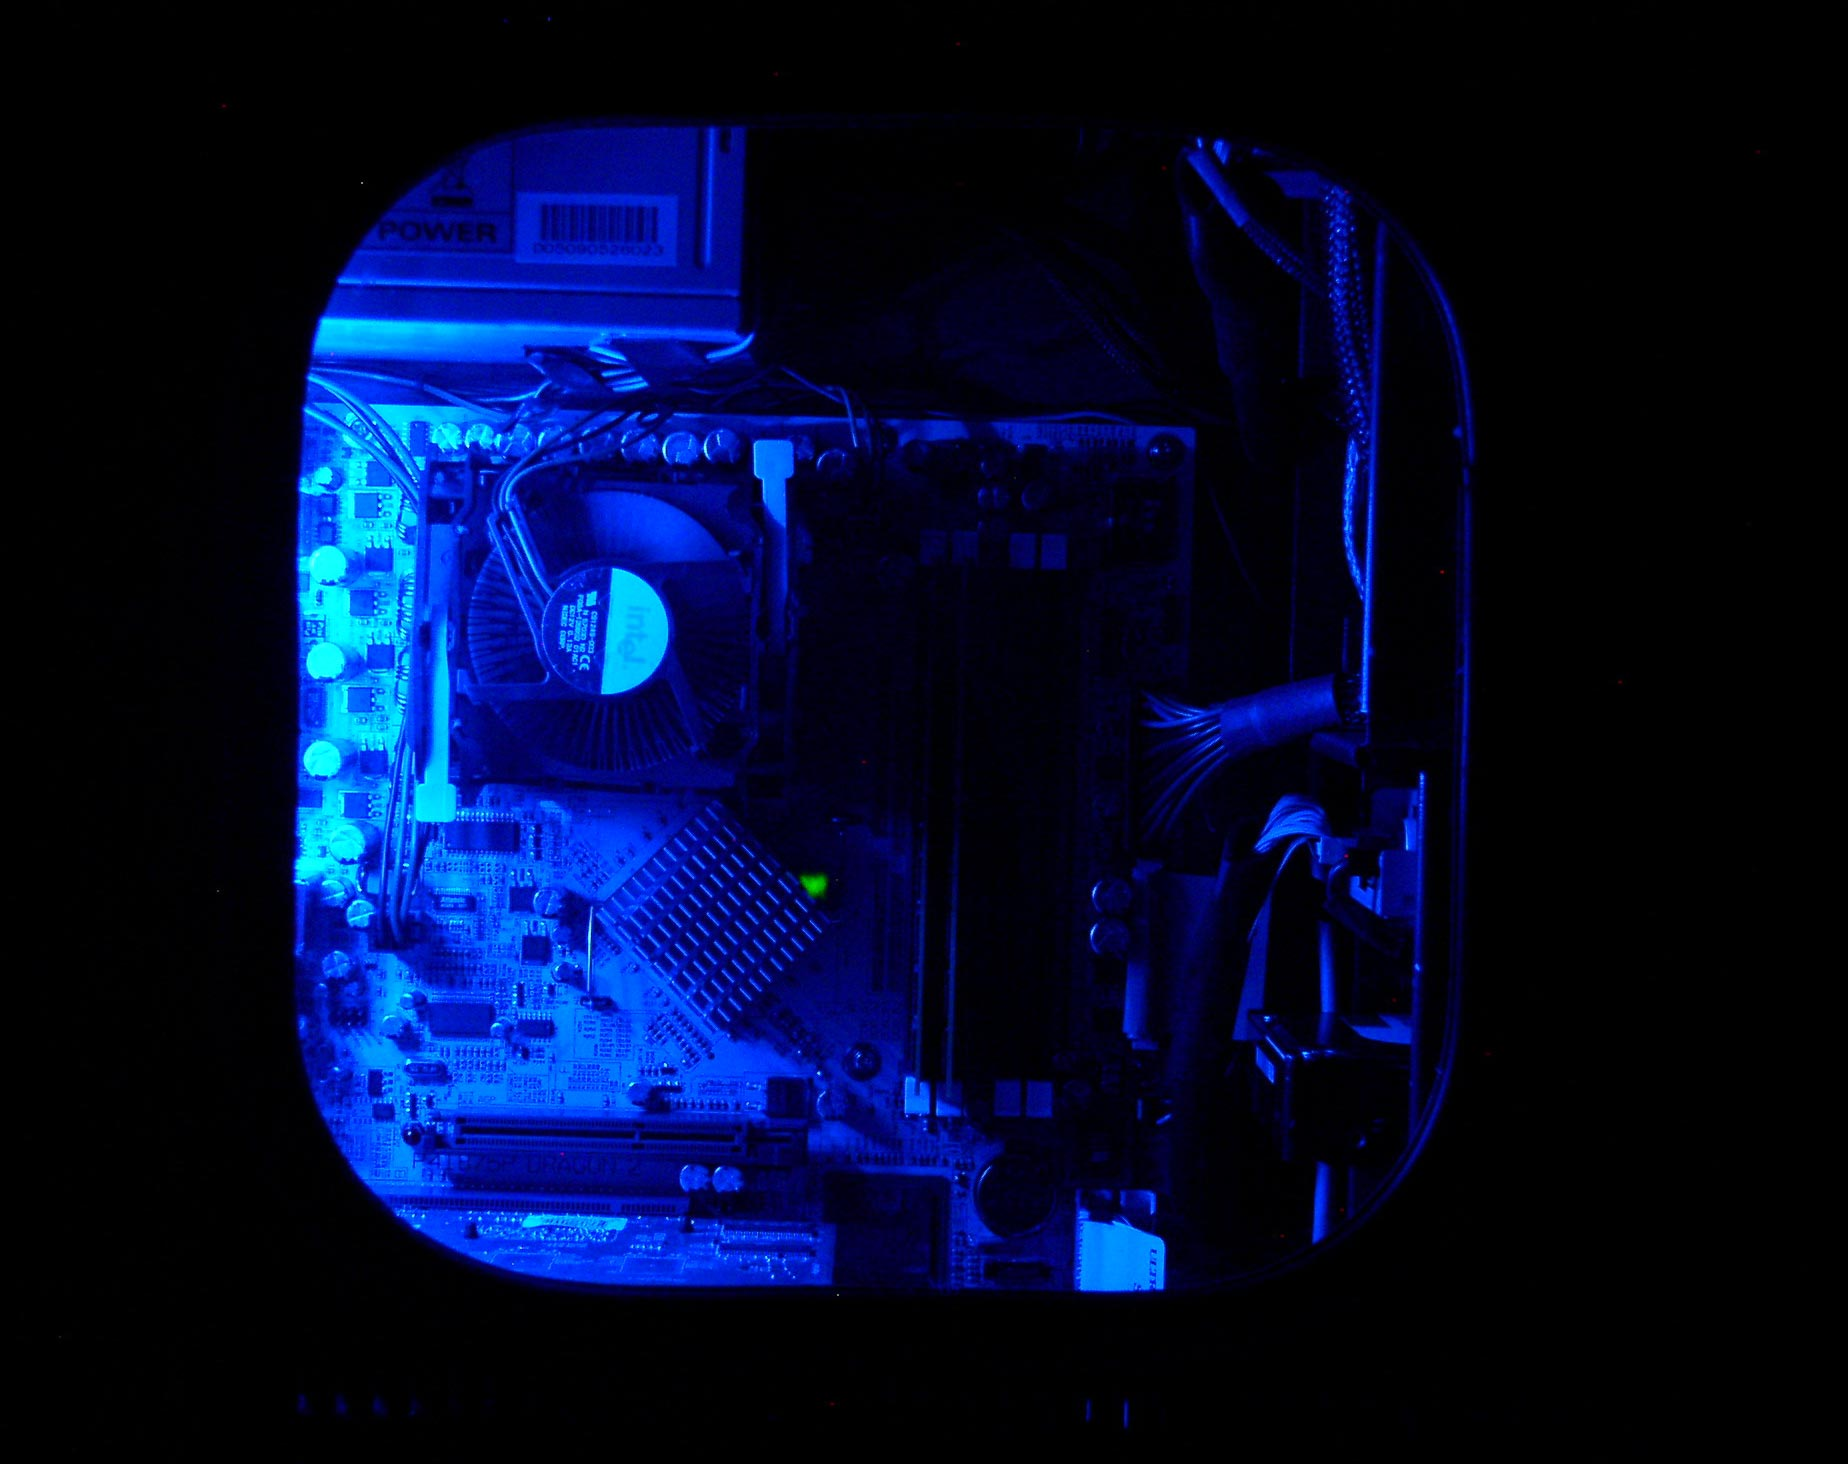 Blue light on with side panel